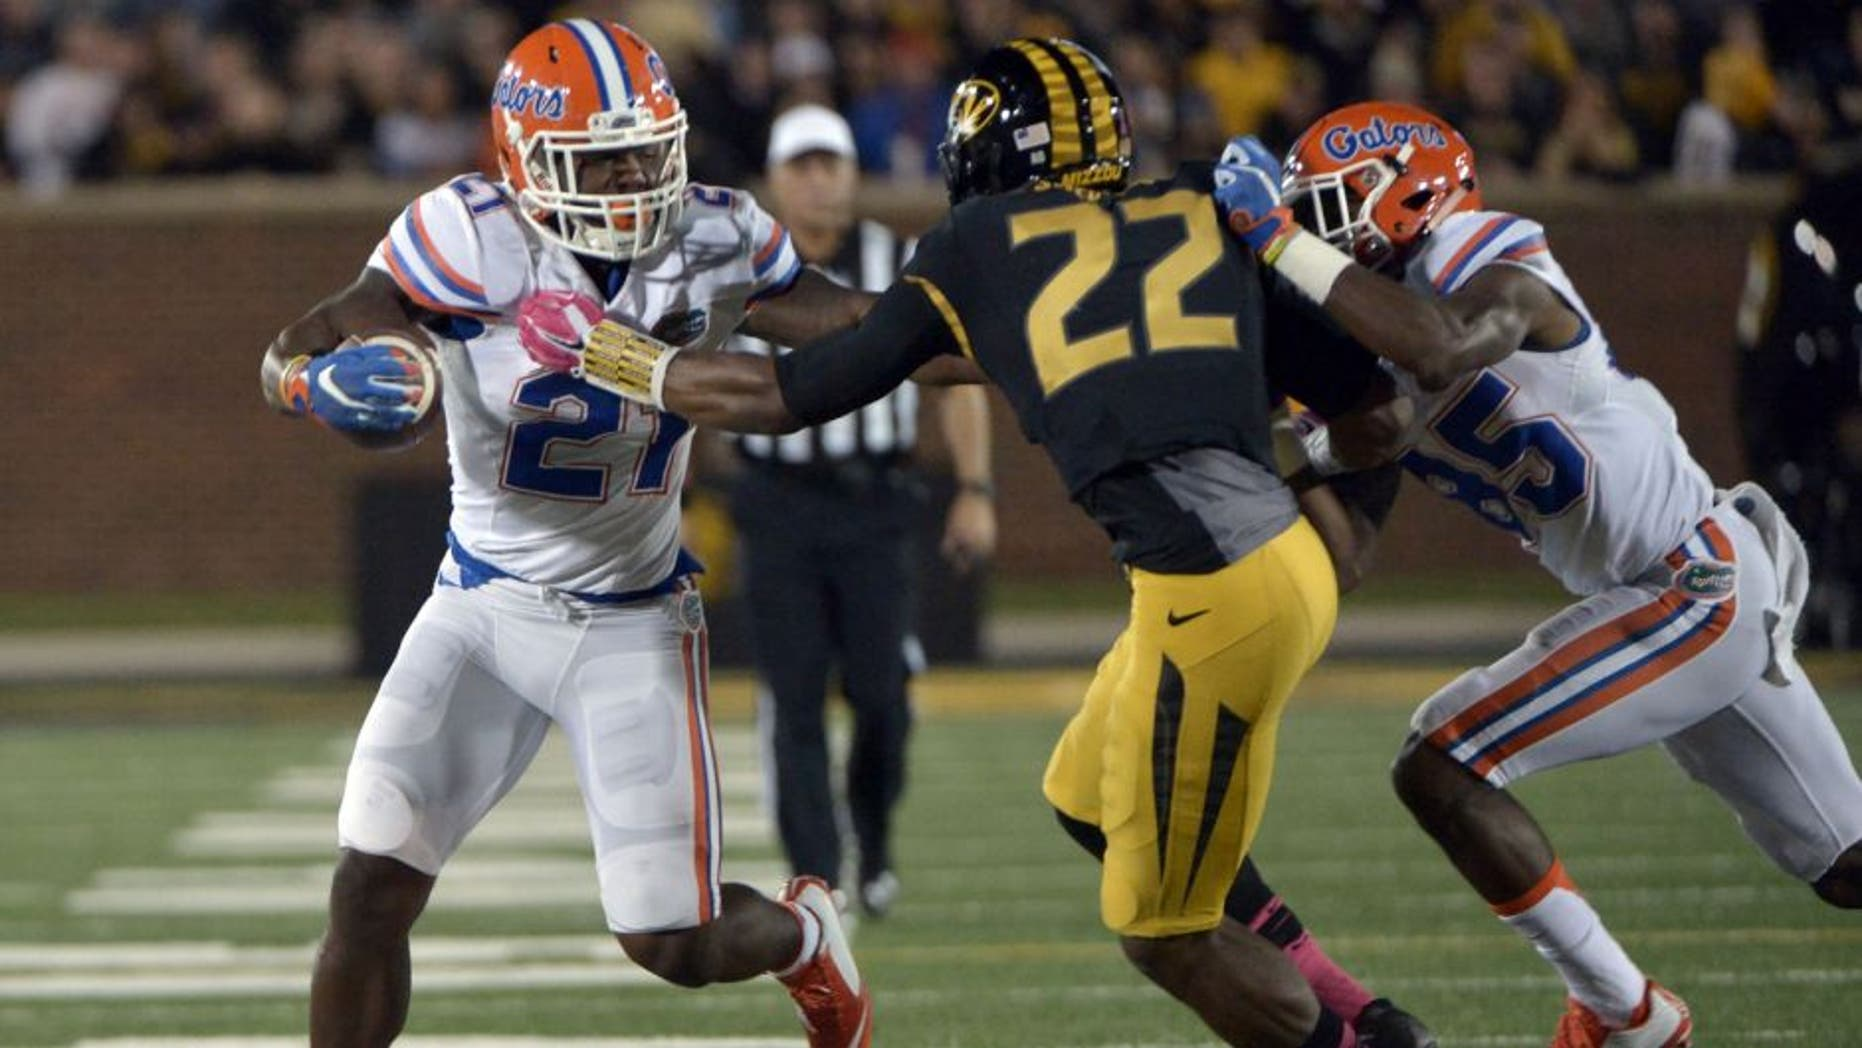 Oct 10, 2015; Columbia, MO, USA; Florida Gators running back Kelvin Taylor (21) runs the ball as Missouri Tigers defensive back Anthony Sherrils (22) defends during the first half at Faurot Field. Mandatory Credit: Denny Medley-USA TODAY Sports